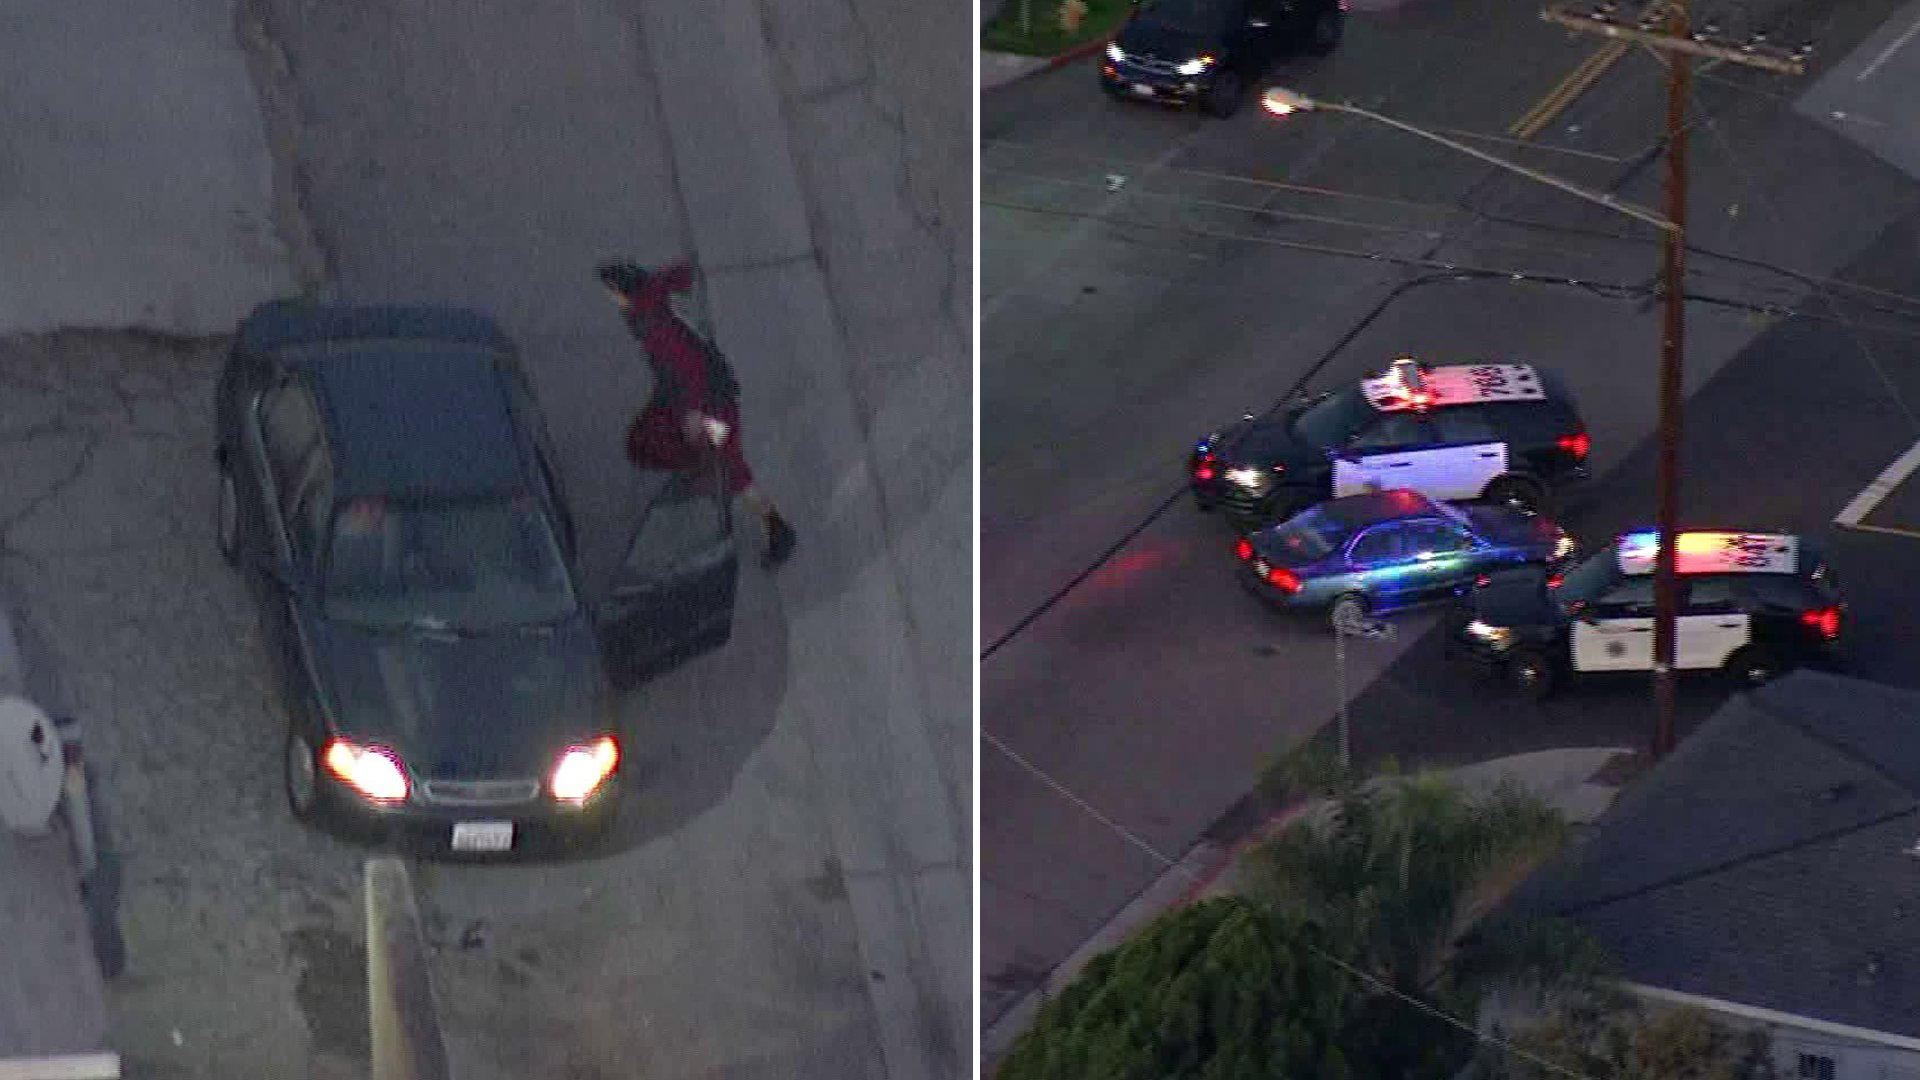 A pursuit suspect abandons his car after eluding police in the city of San Pedro on Jan. 30, 2020, despite a PIT maneuver by one of the officers. (Credit: KTLA)